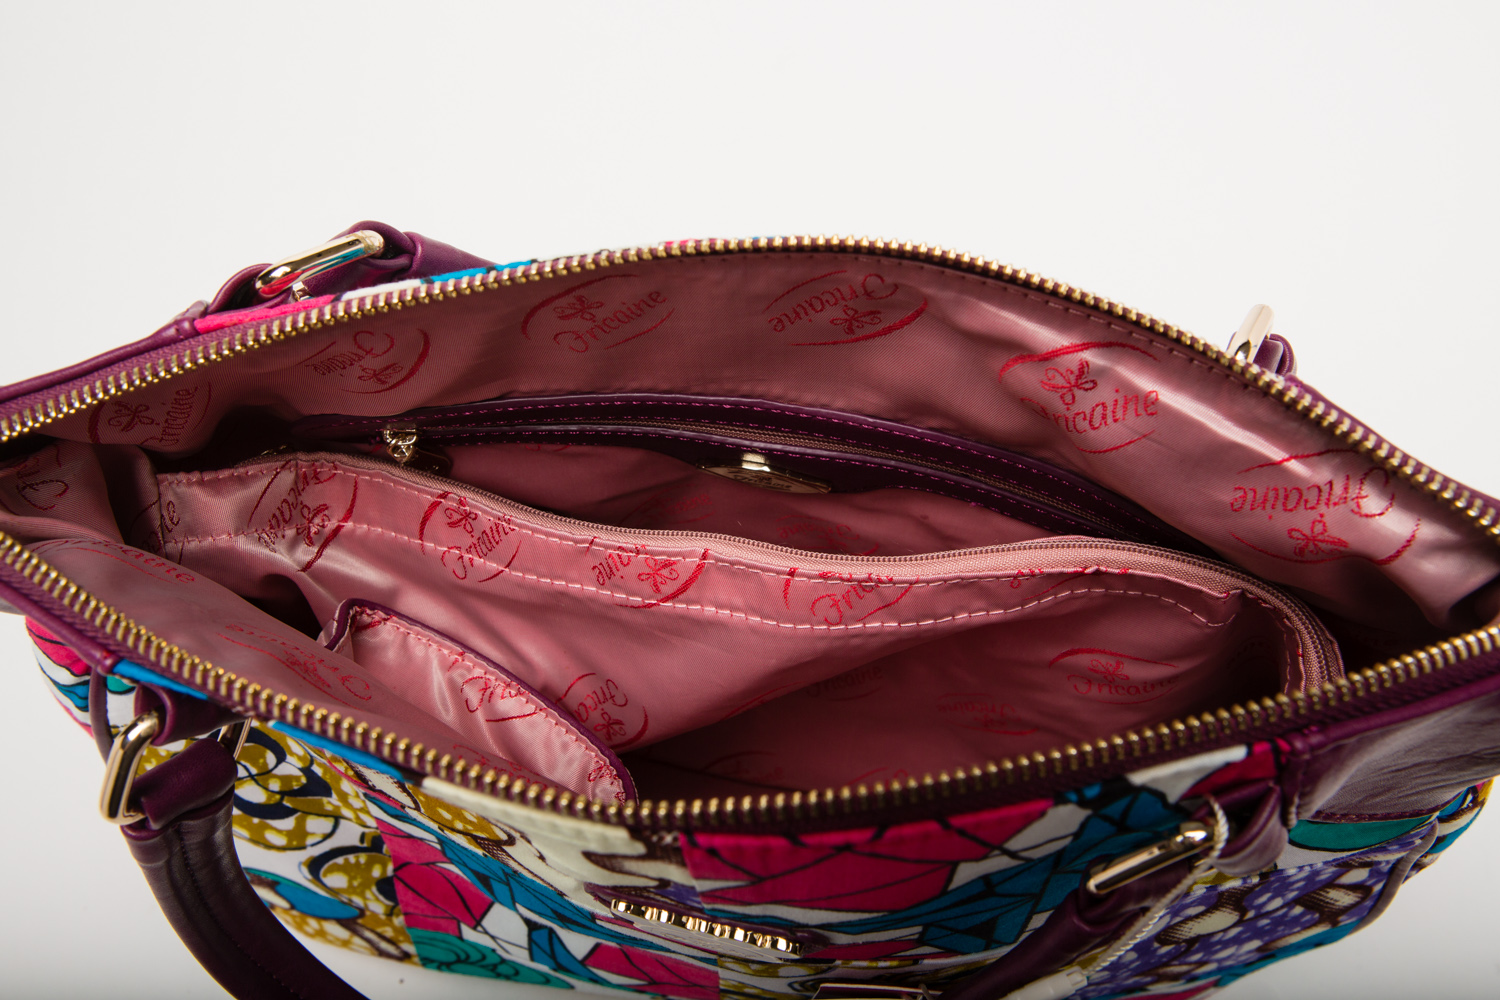 Using the Fricaine Pretty Bride Shoulder Bag as the Perfect Laptop Bag